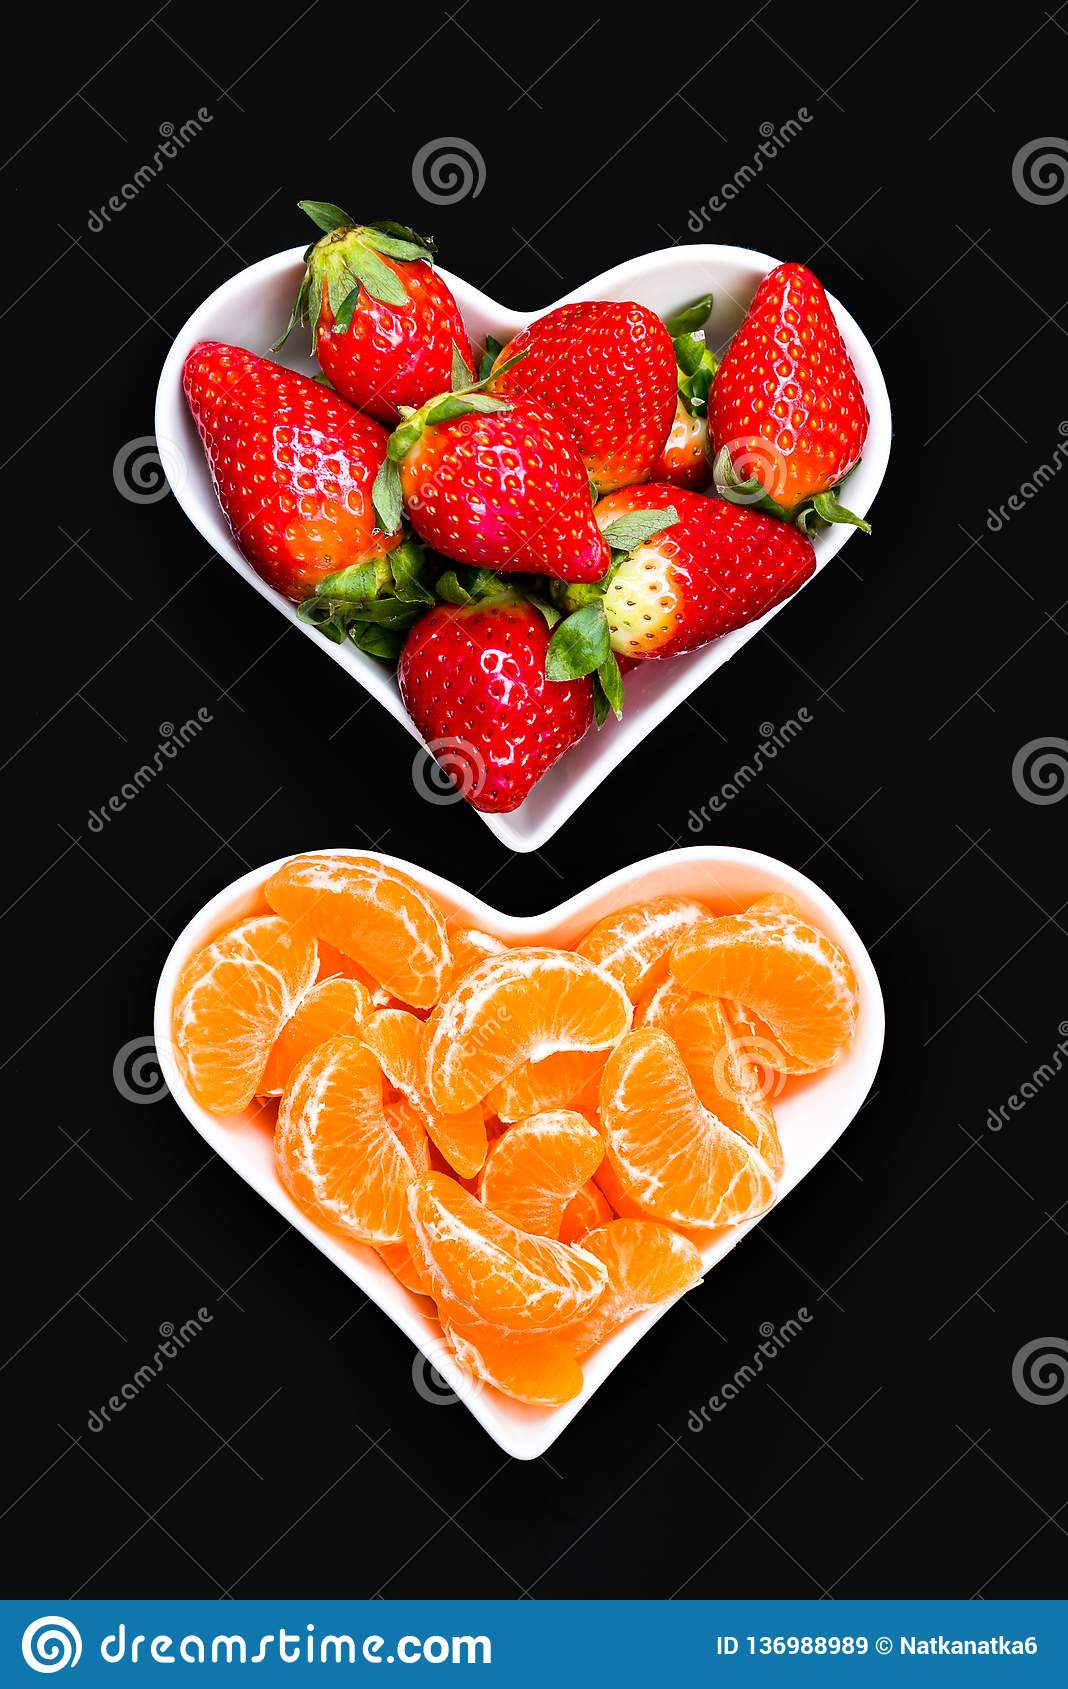 Strawberries and tangerine slices in white plates